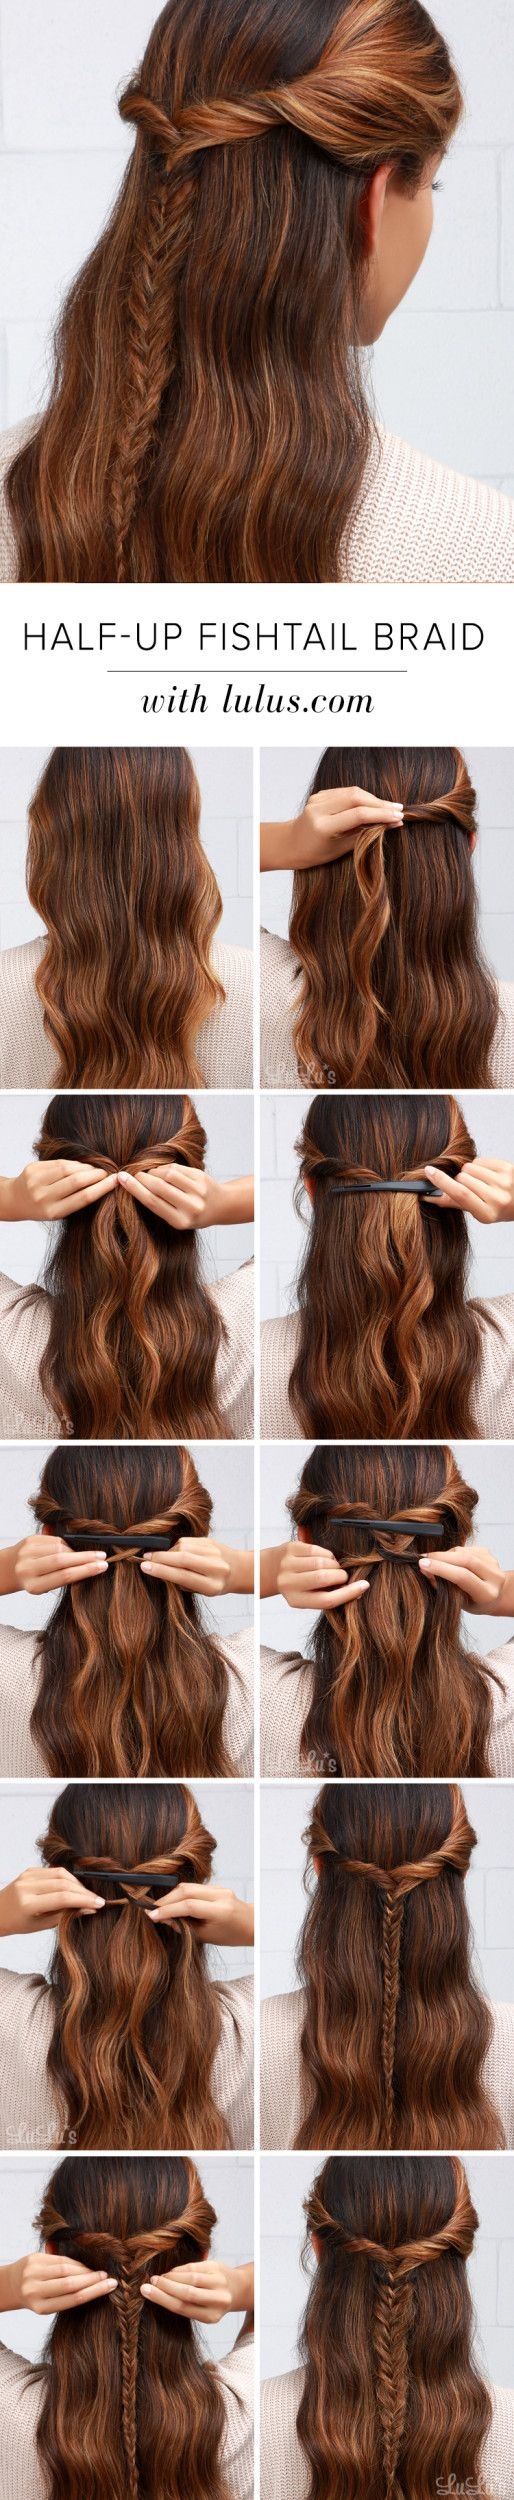 best girly images on pinterest hairstyle ideas hairstyle